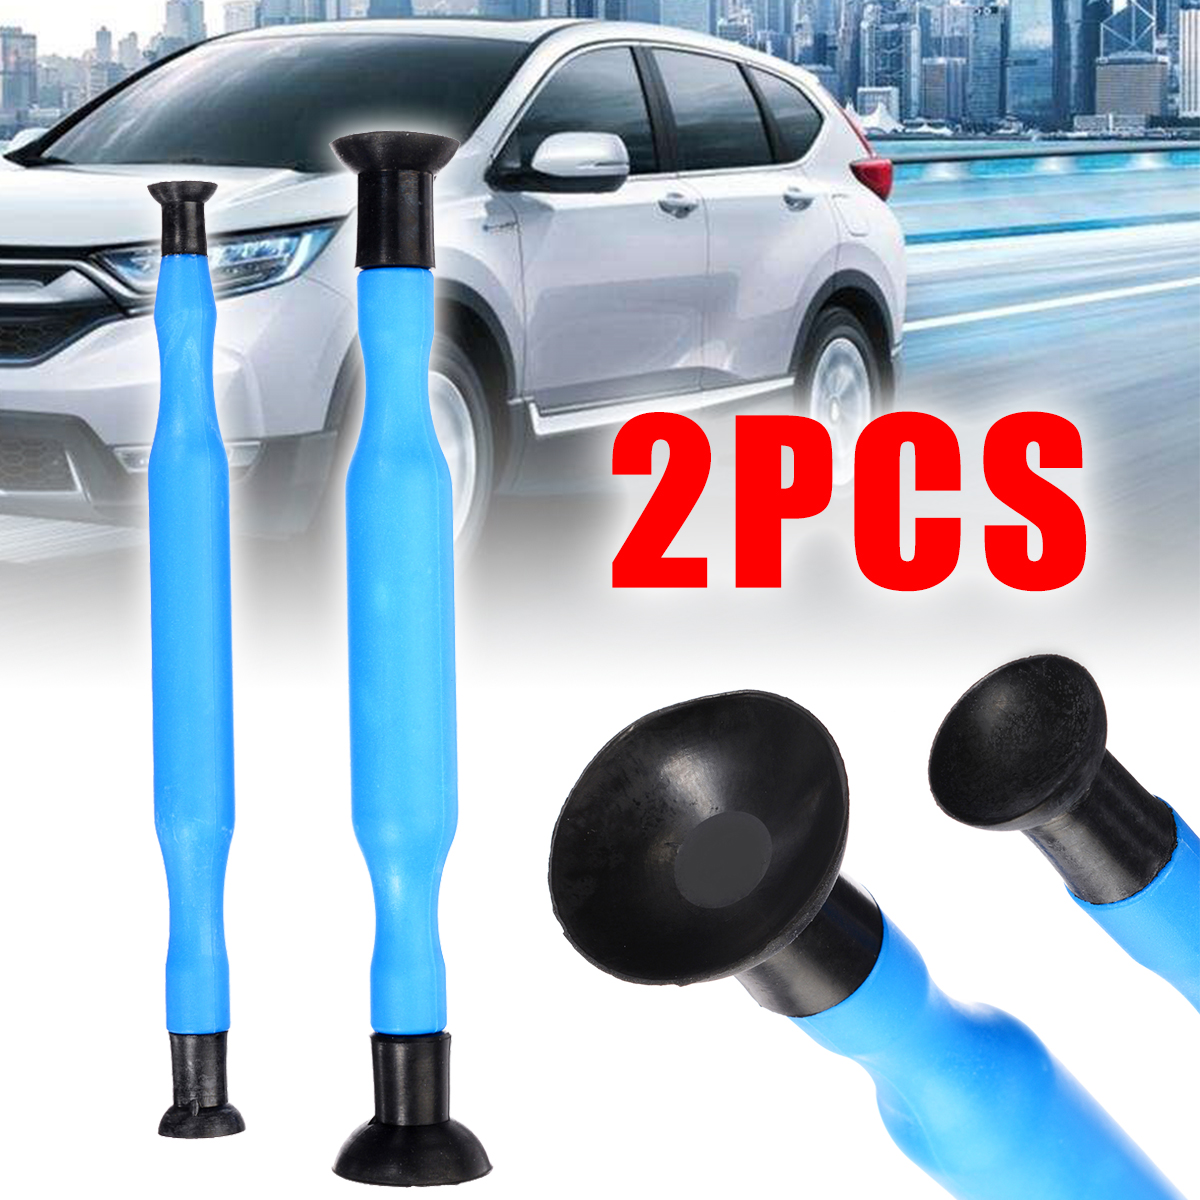 Mayitr 2pcs Valve Lapping Grinding Stick Plastic Lapper Grip Tool With Suction Cups Kit Set for Auto Hand Tools